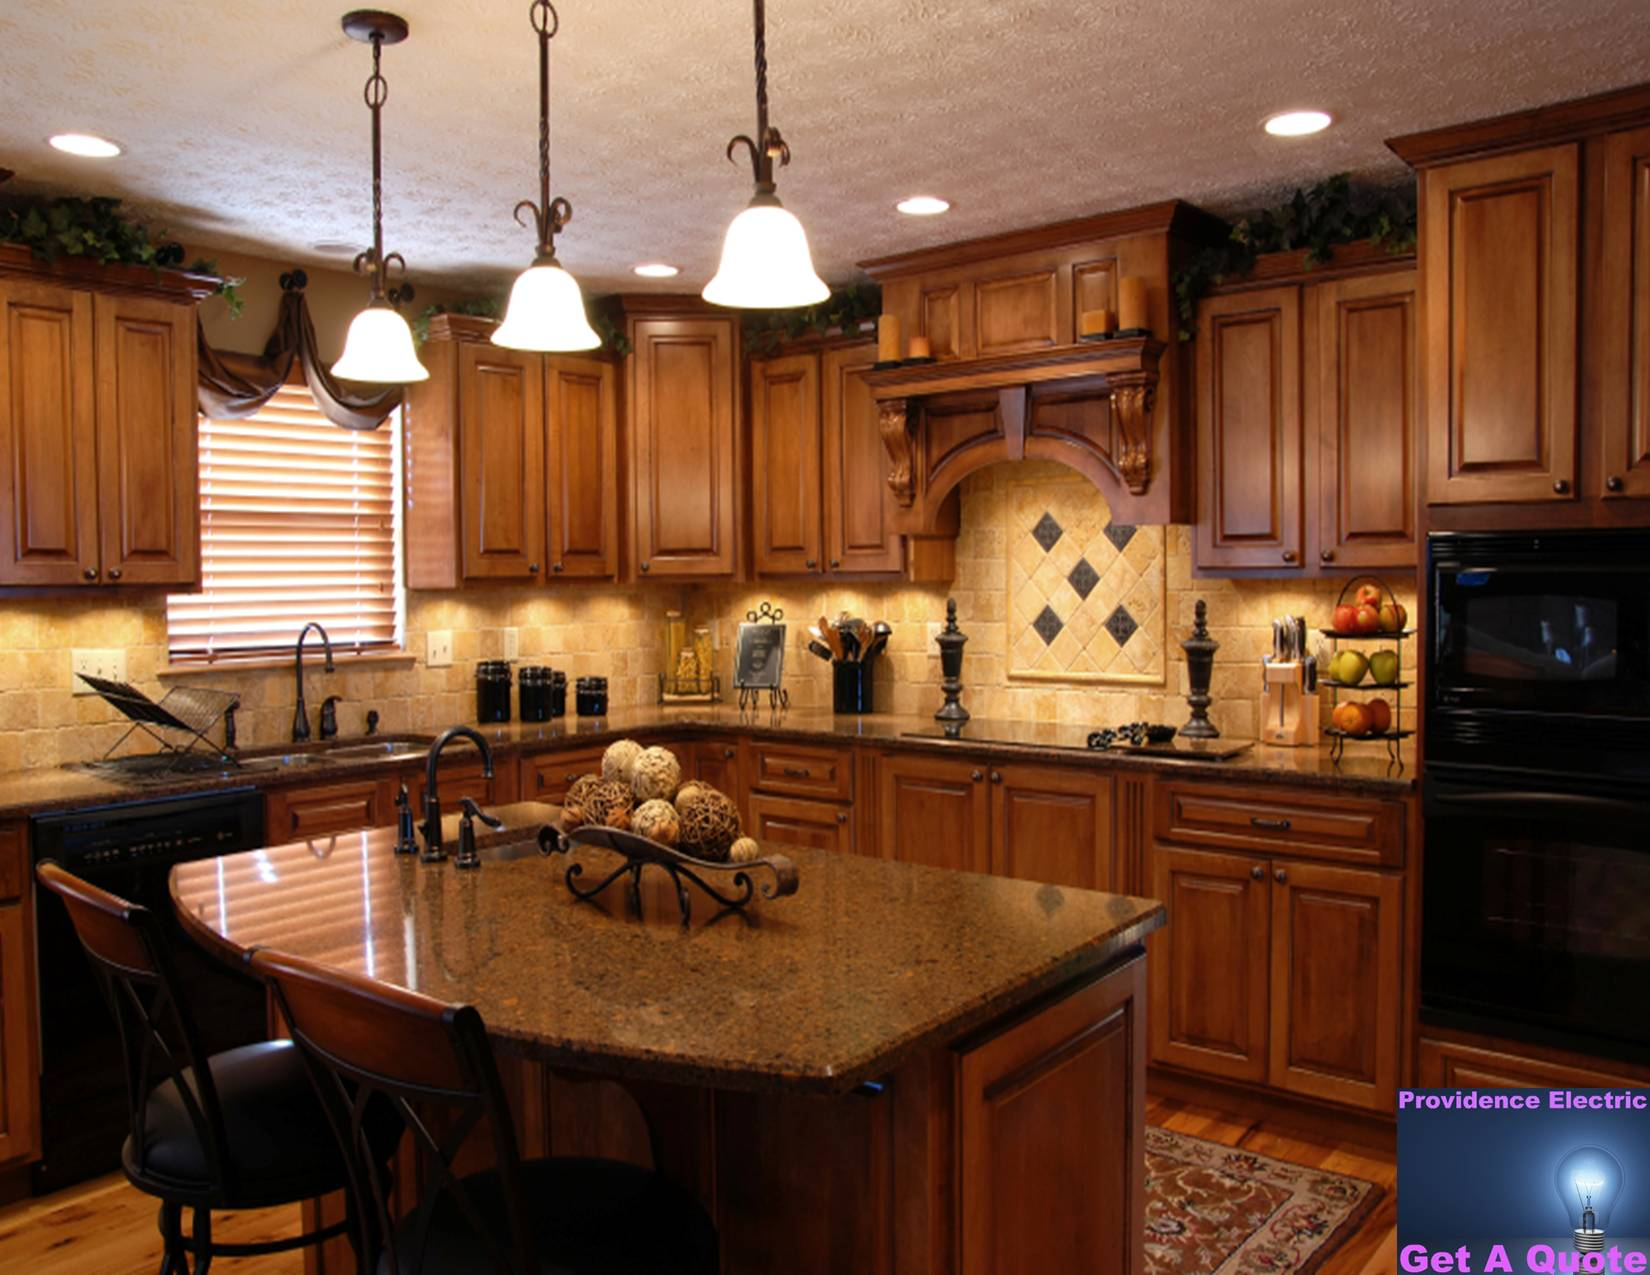 Welcome To Custom Kitchen Creations, We Offer Southeast Michigans Most Preferred Cabinet Refacing Services